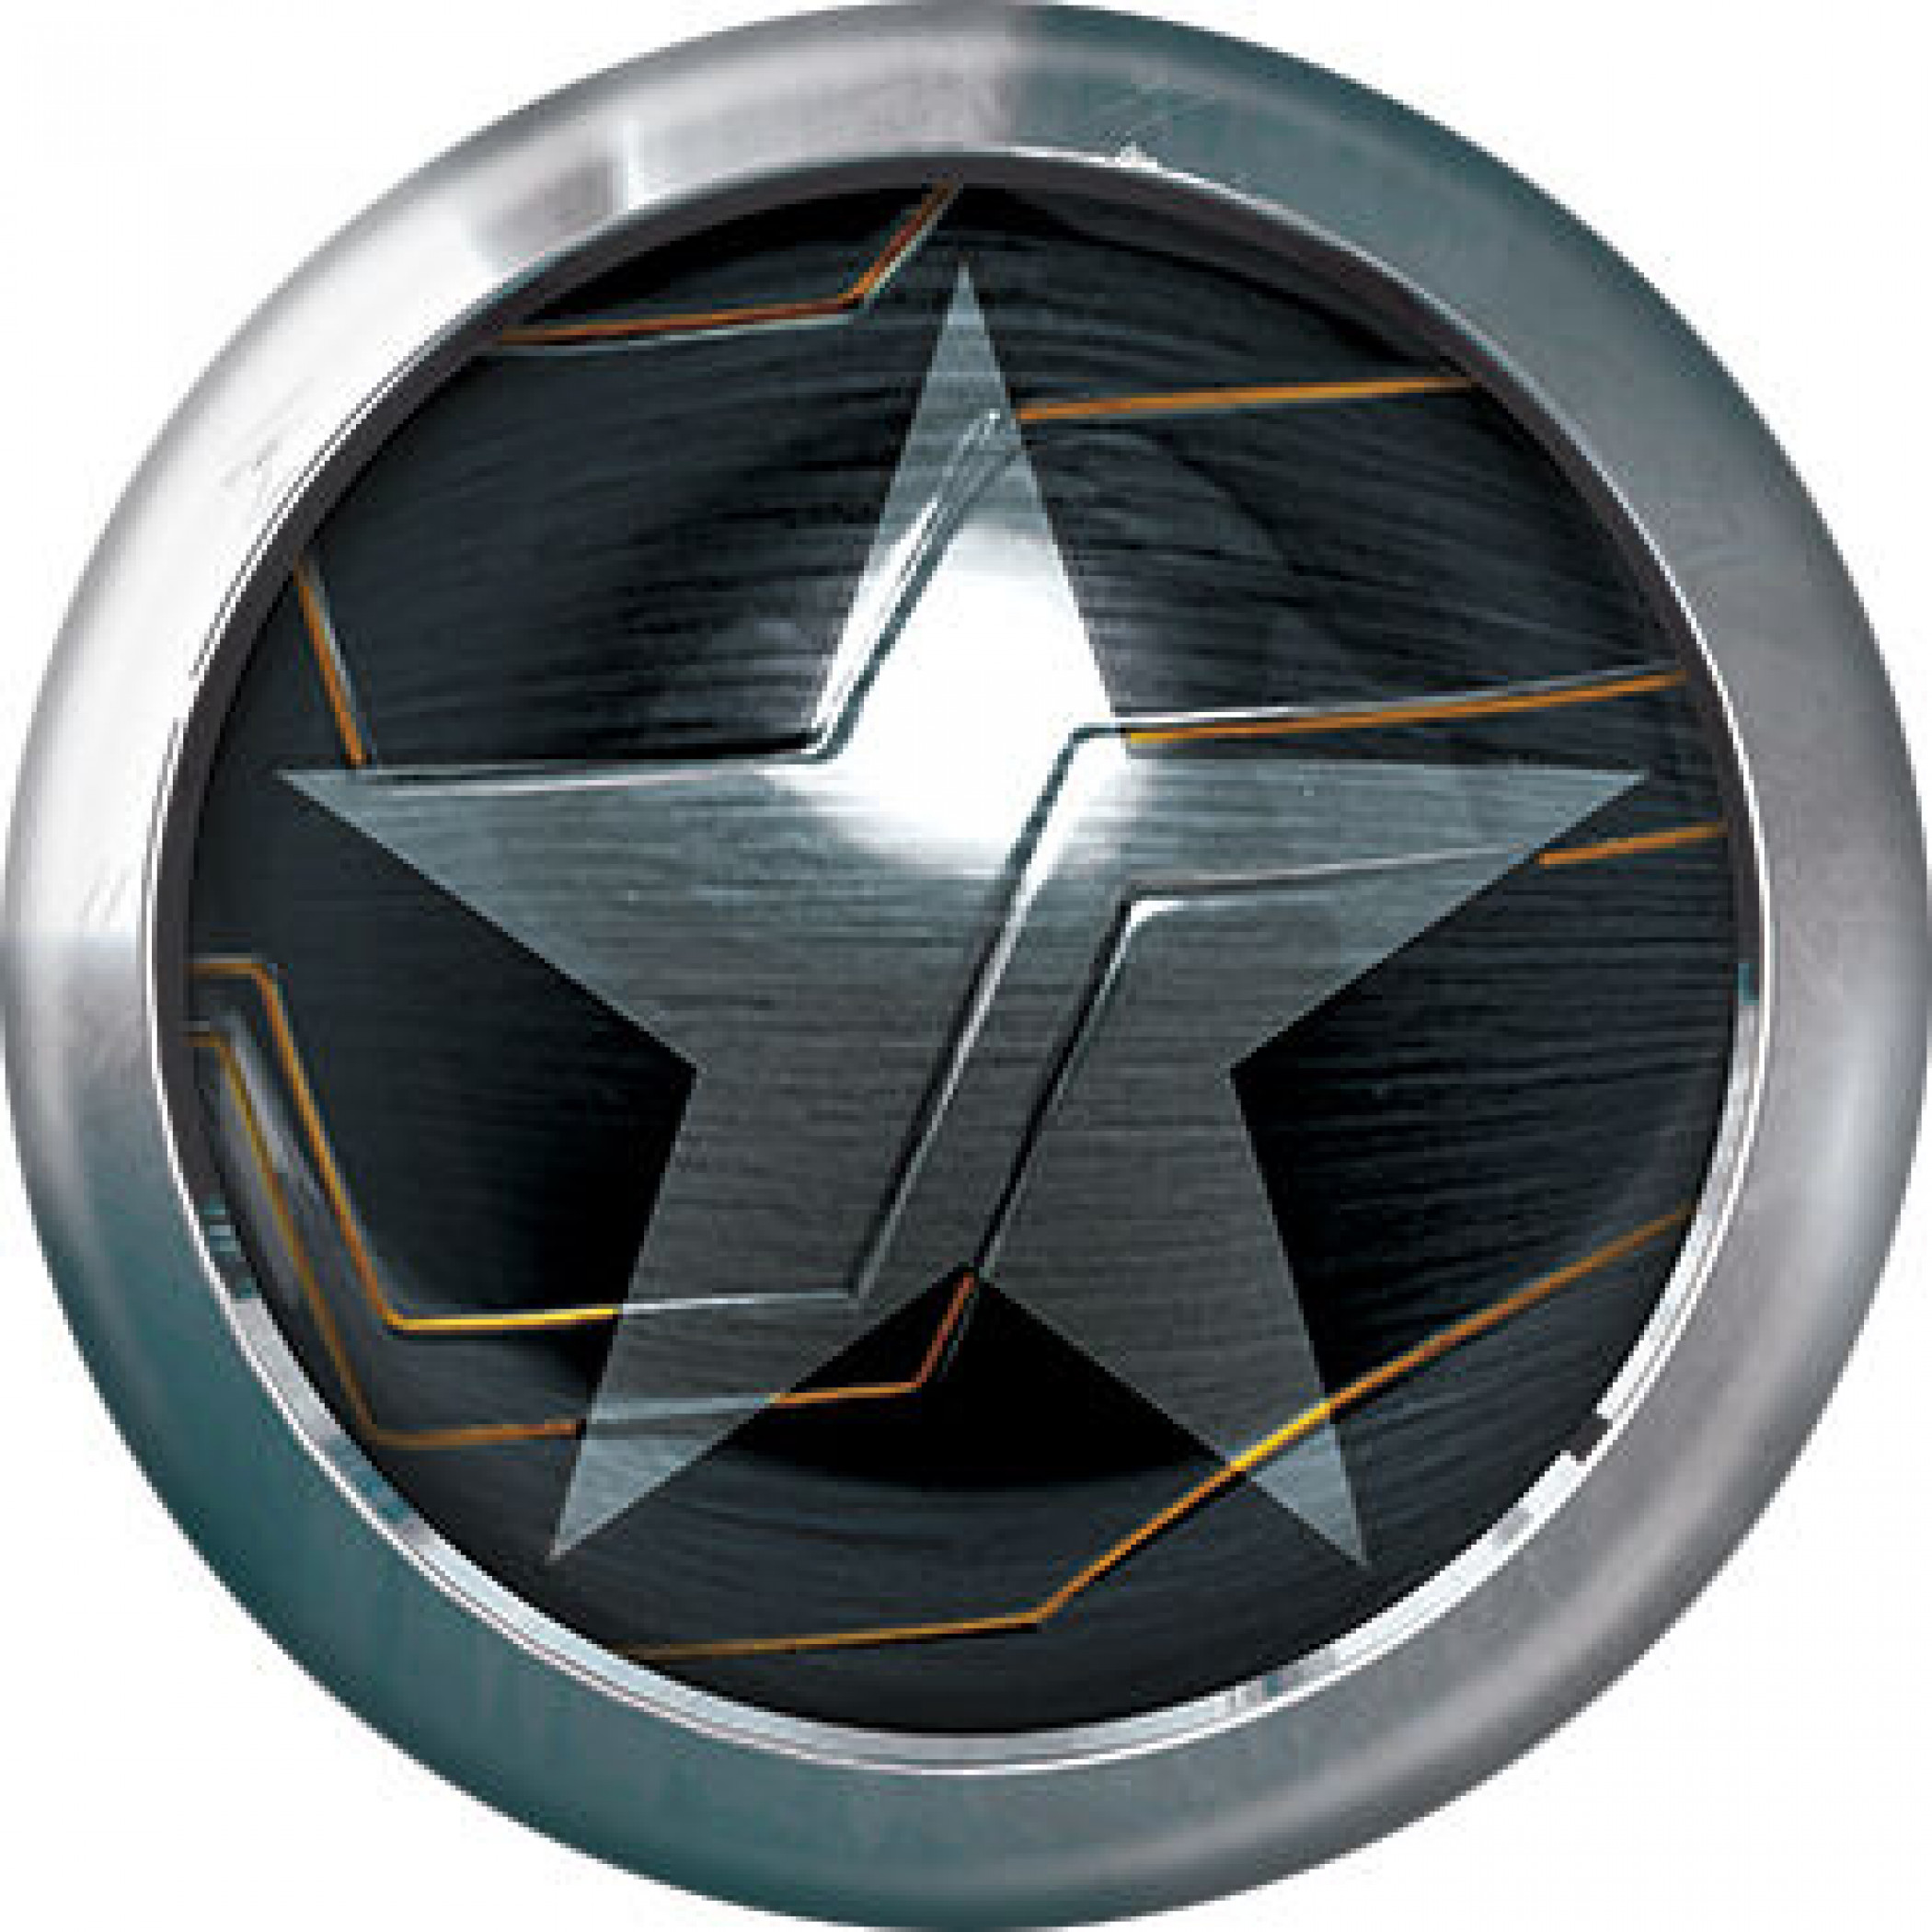 Winter Soldier Symbol From The Falcon and The Winter Soldier Series Button